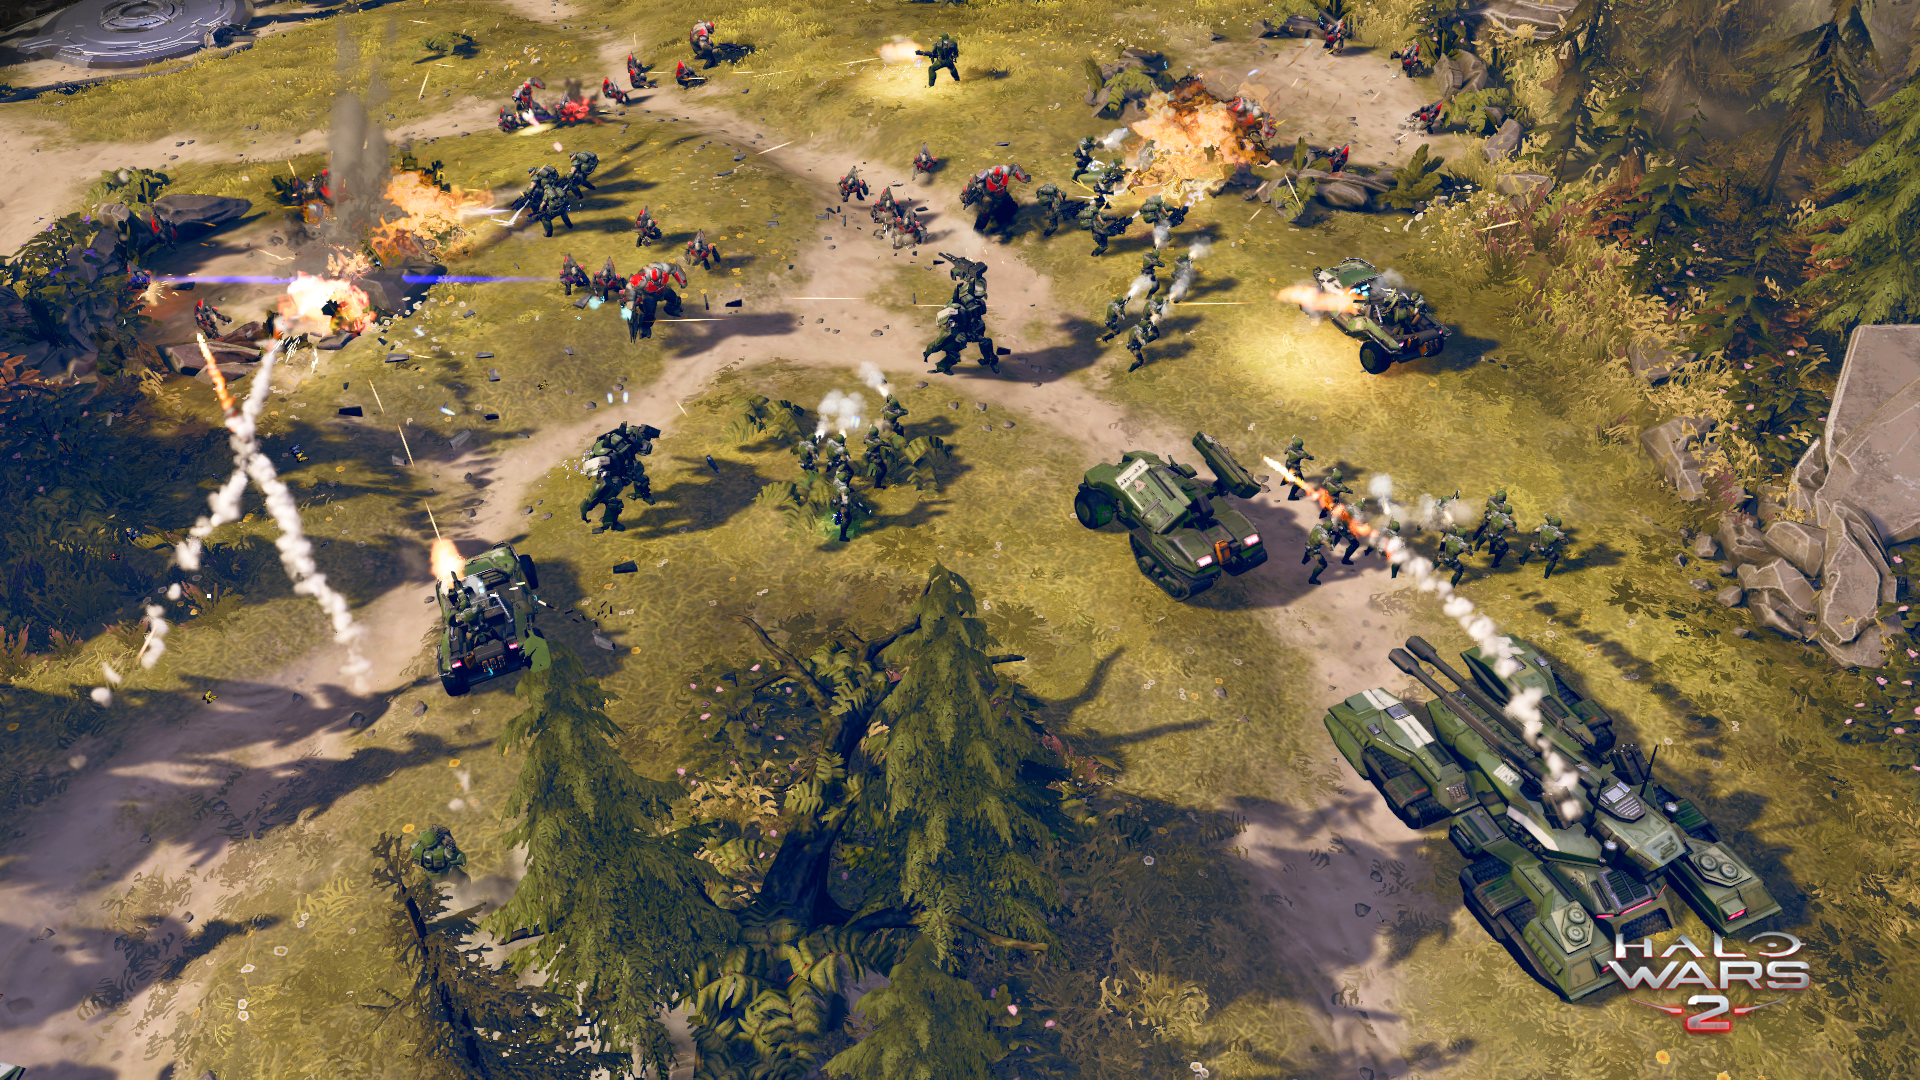 Halo wars definitive edition clipart free stock Halo Wars 2 Tests Your Reflexes and Your Mind - Xbox Wire free stock